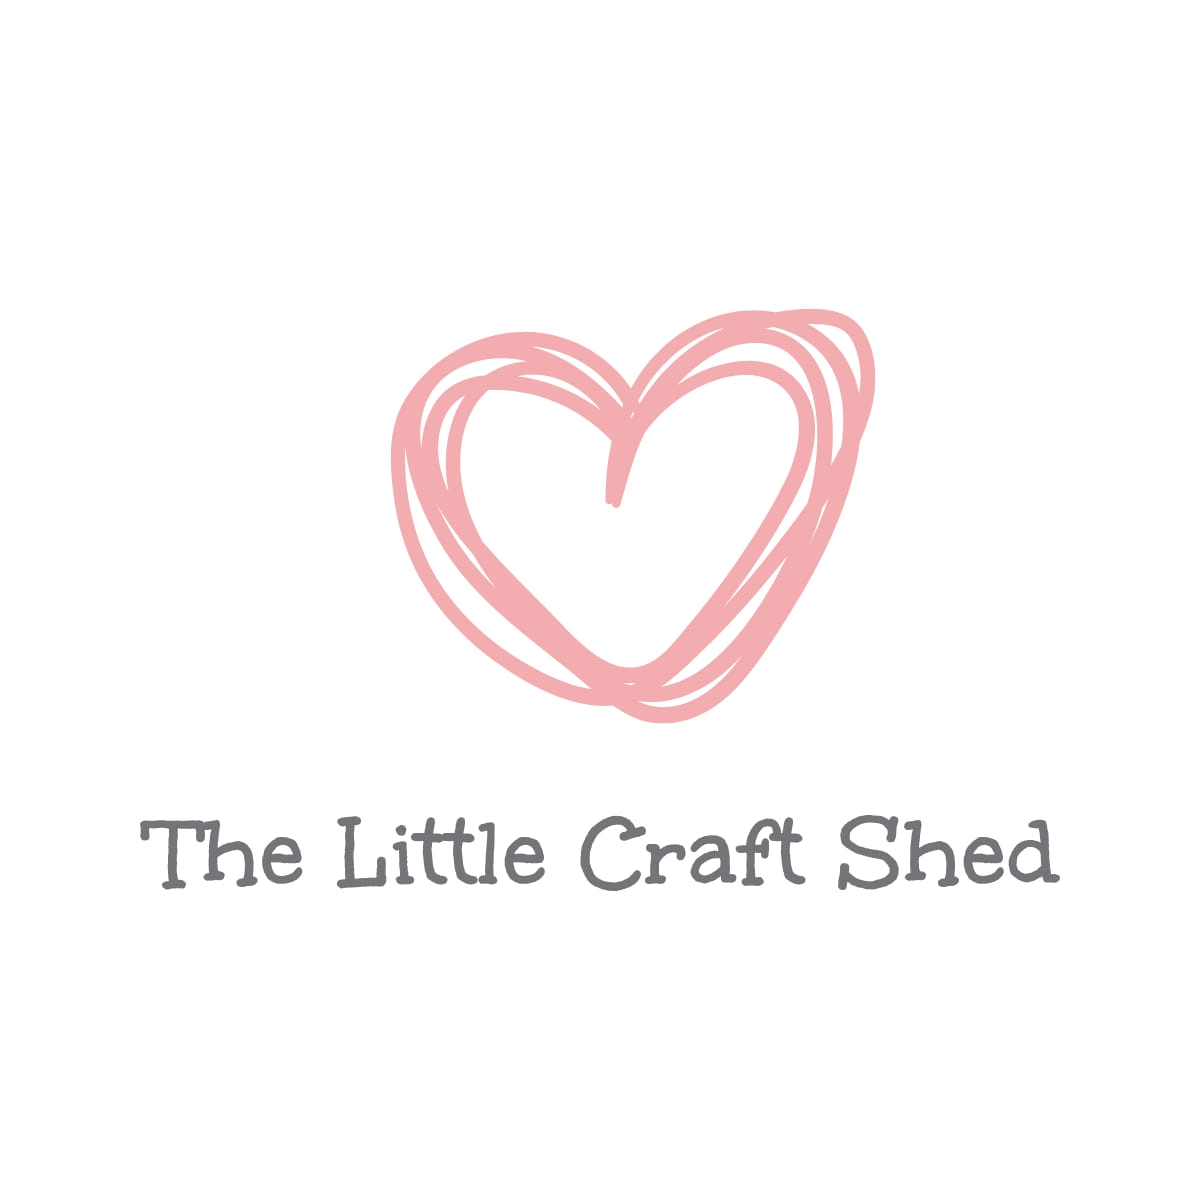 The Little Craft Shed